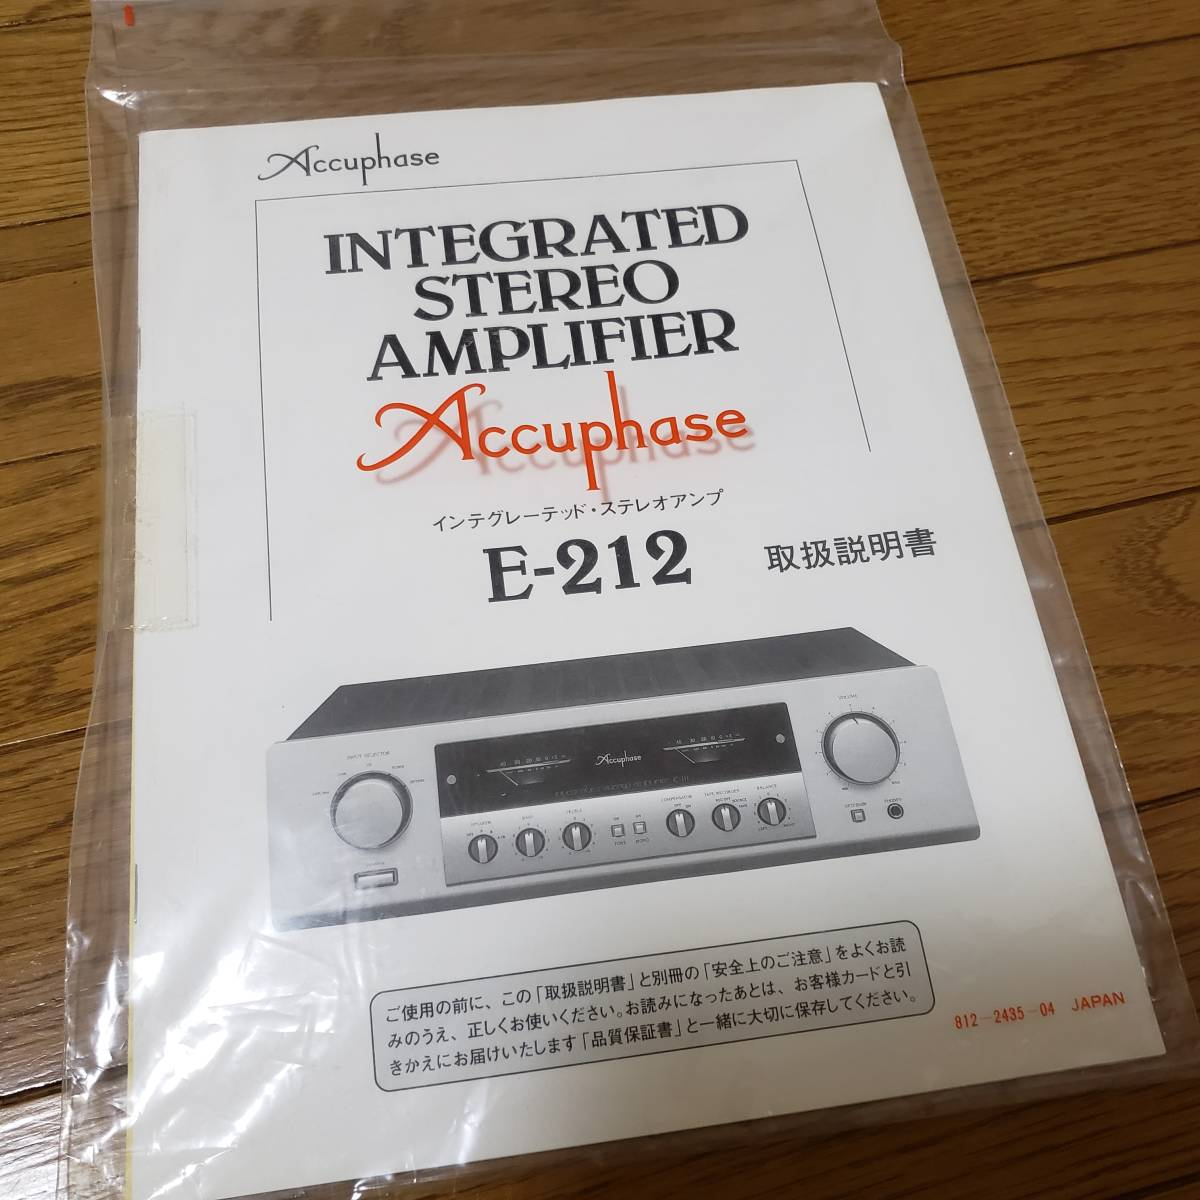 Accuphase アキュフェーズ E-212 インテグレーテッド ステレオアンプ 取扱説明書_画像1